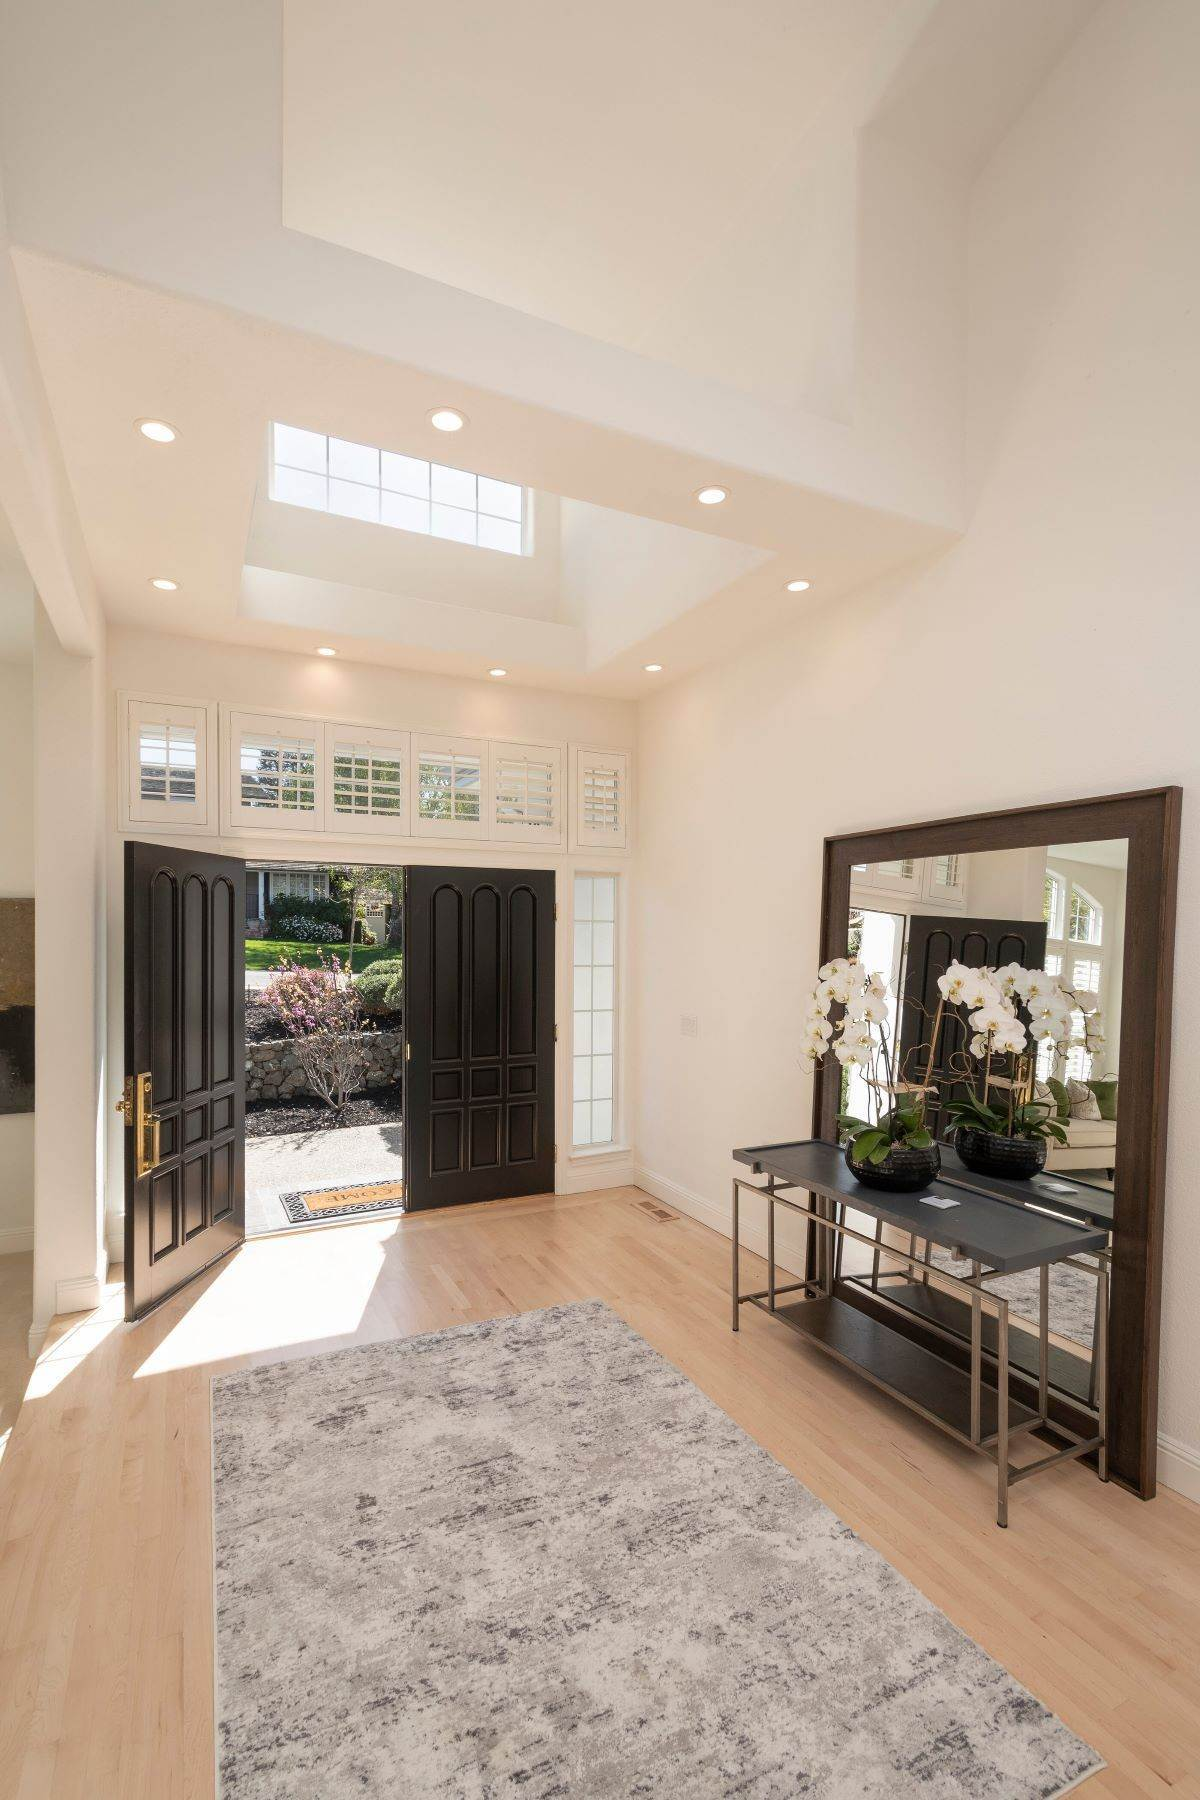 5. Single Family Homes for Sale at Stunning Home in Prestigious San Carlos Neighborhood 1332 Pebble Drive San Carlos, California 94070 United States